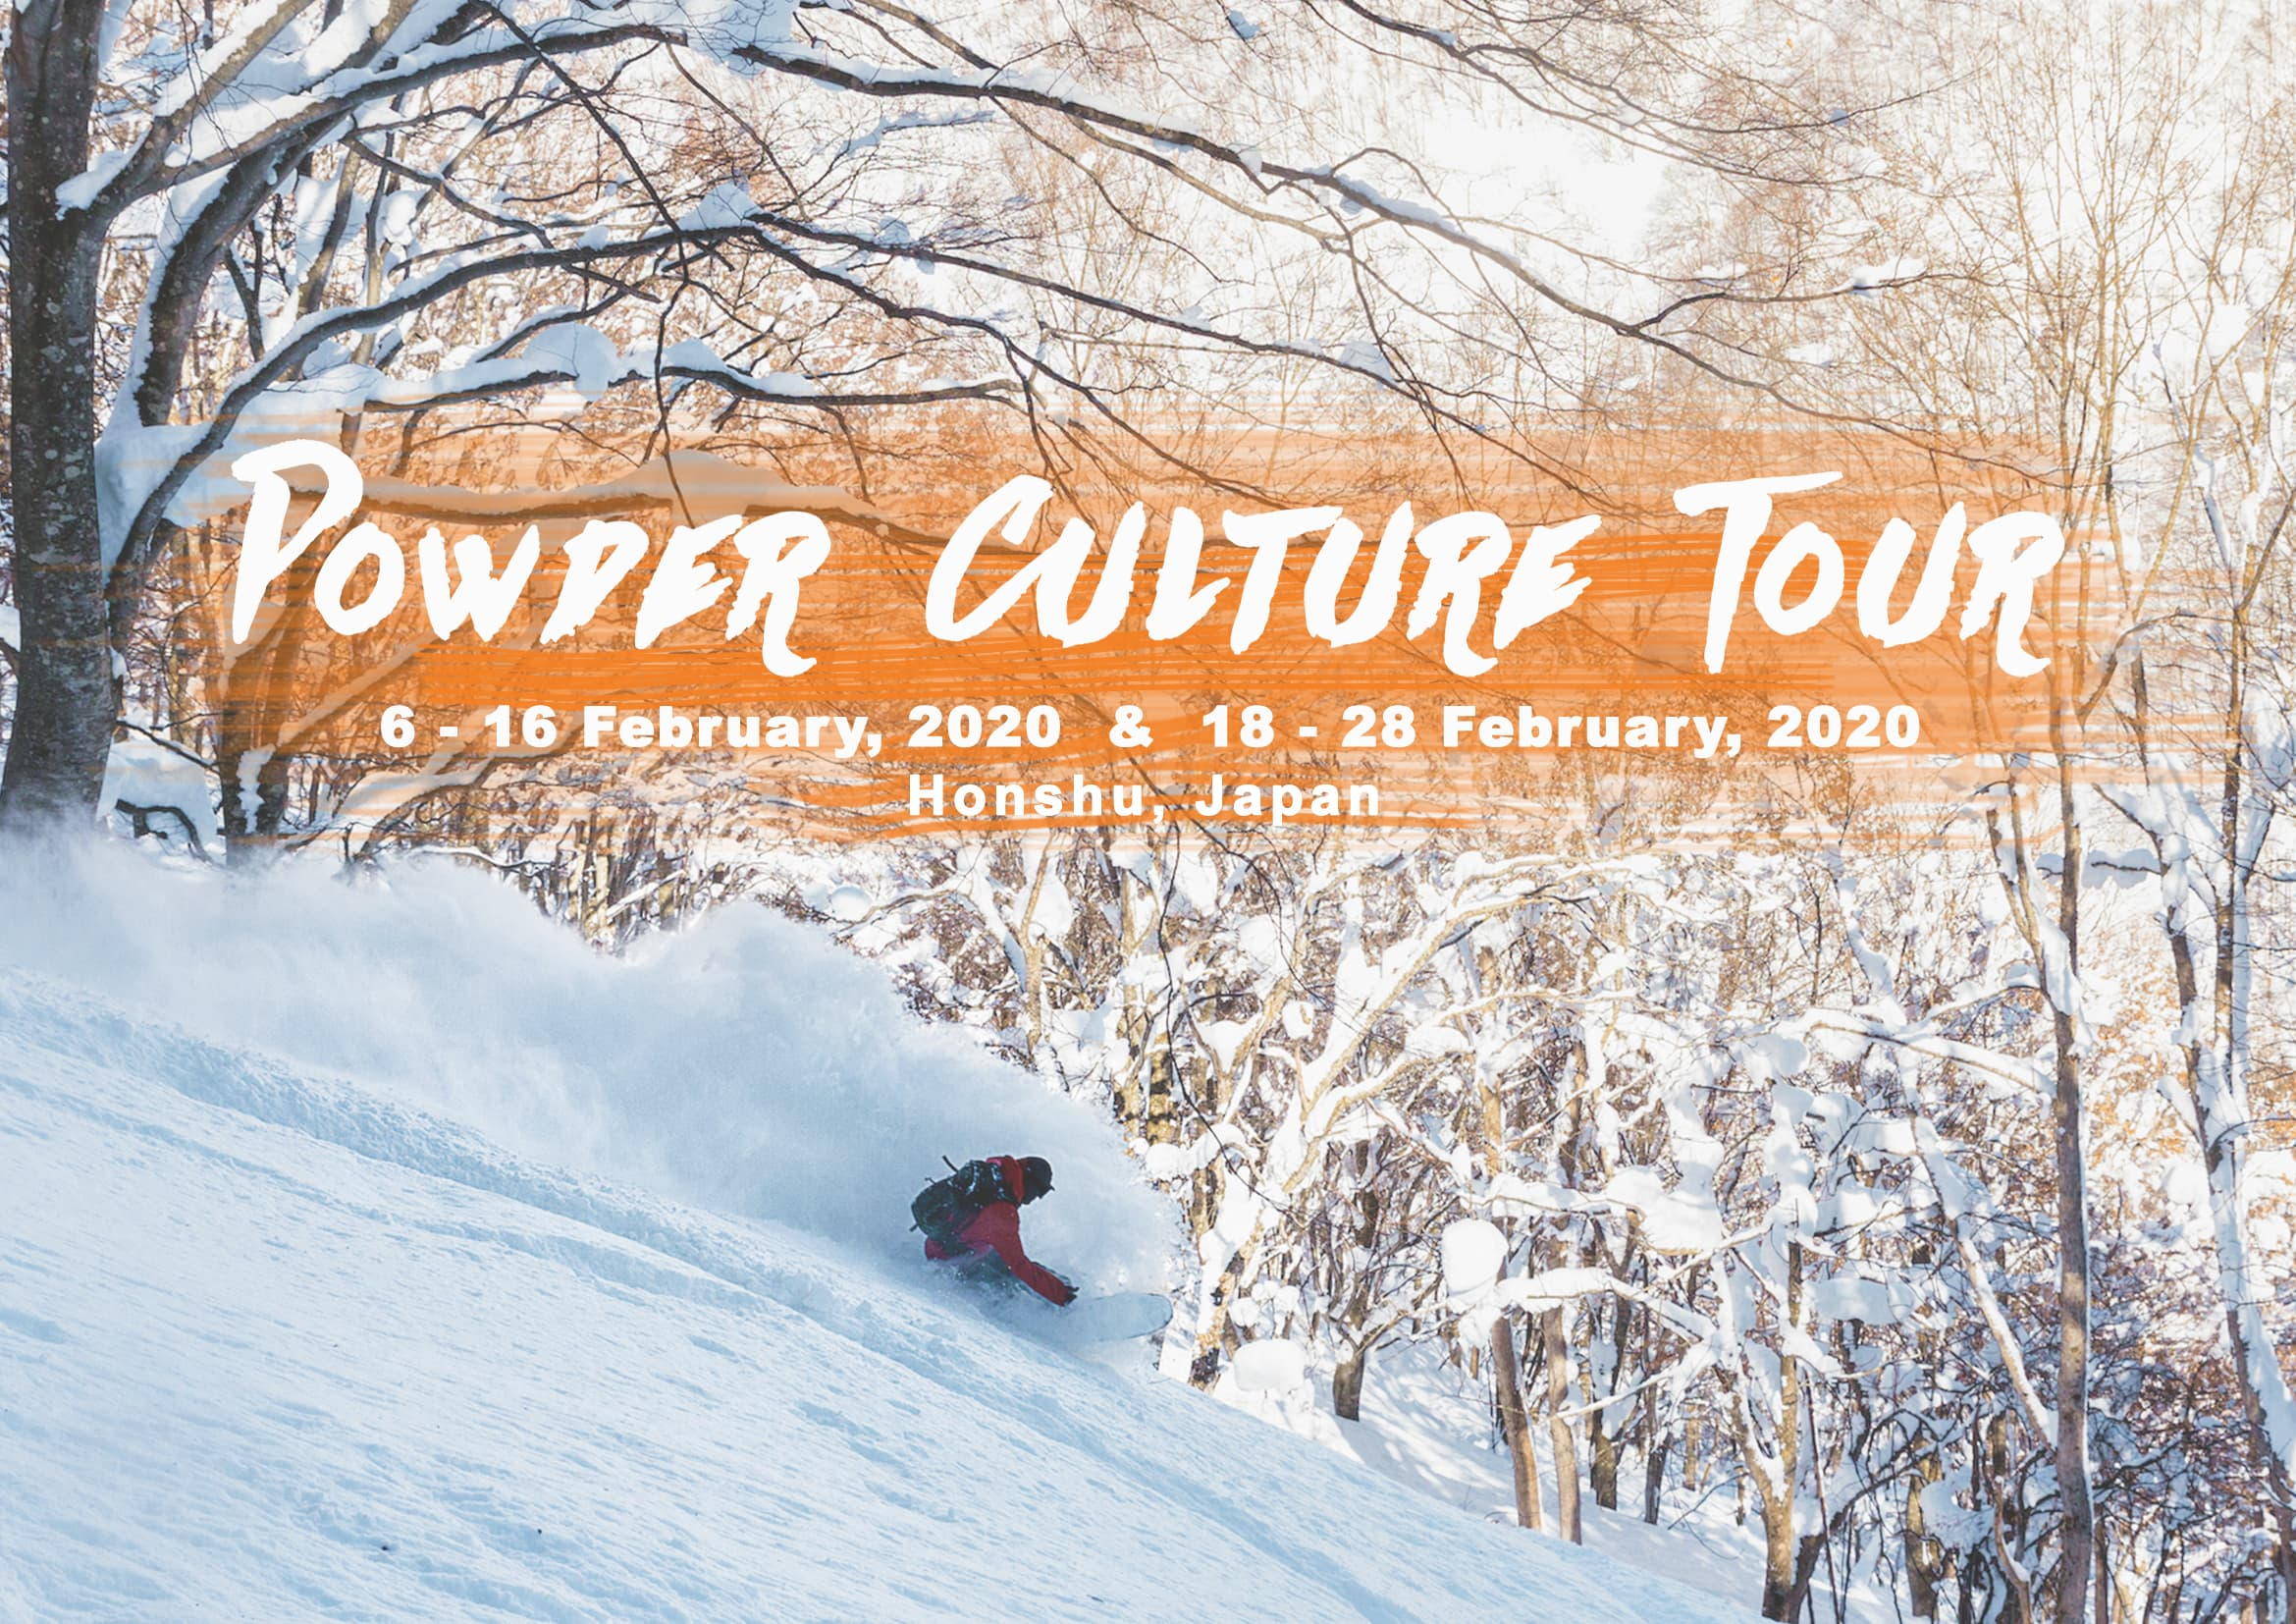 Powder Culture Tour 2020 with First Tours